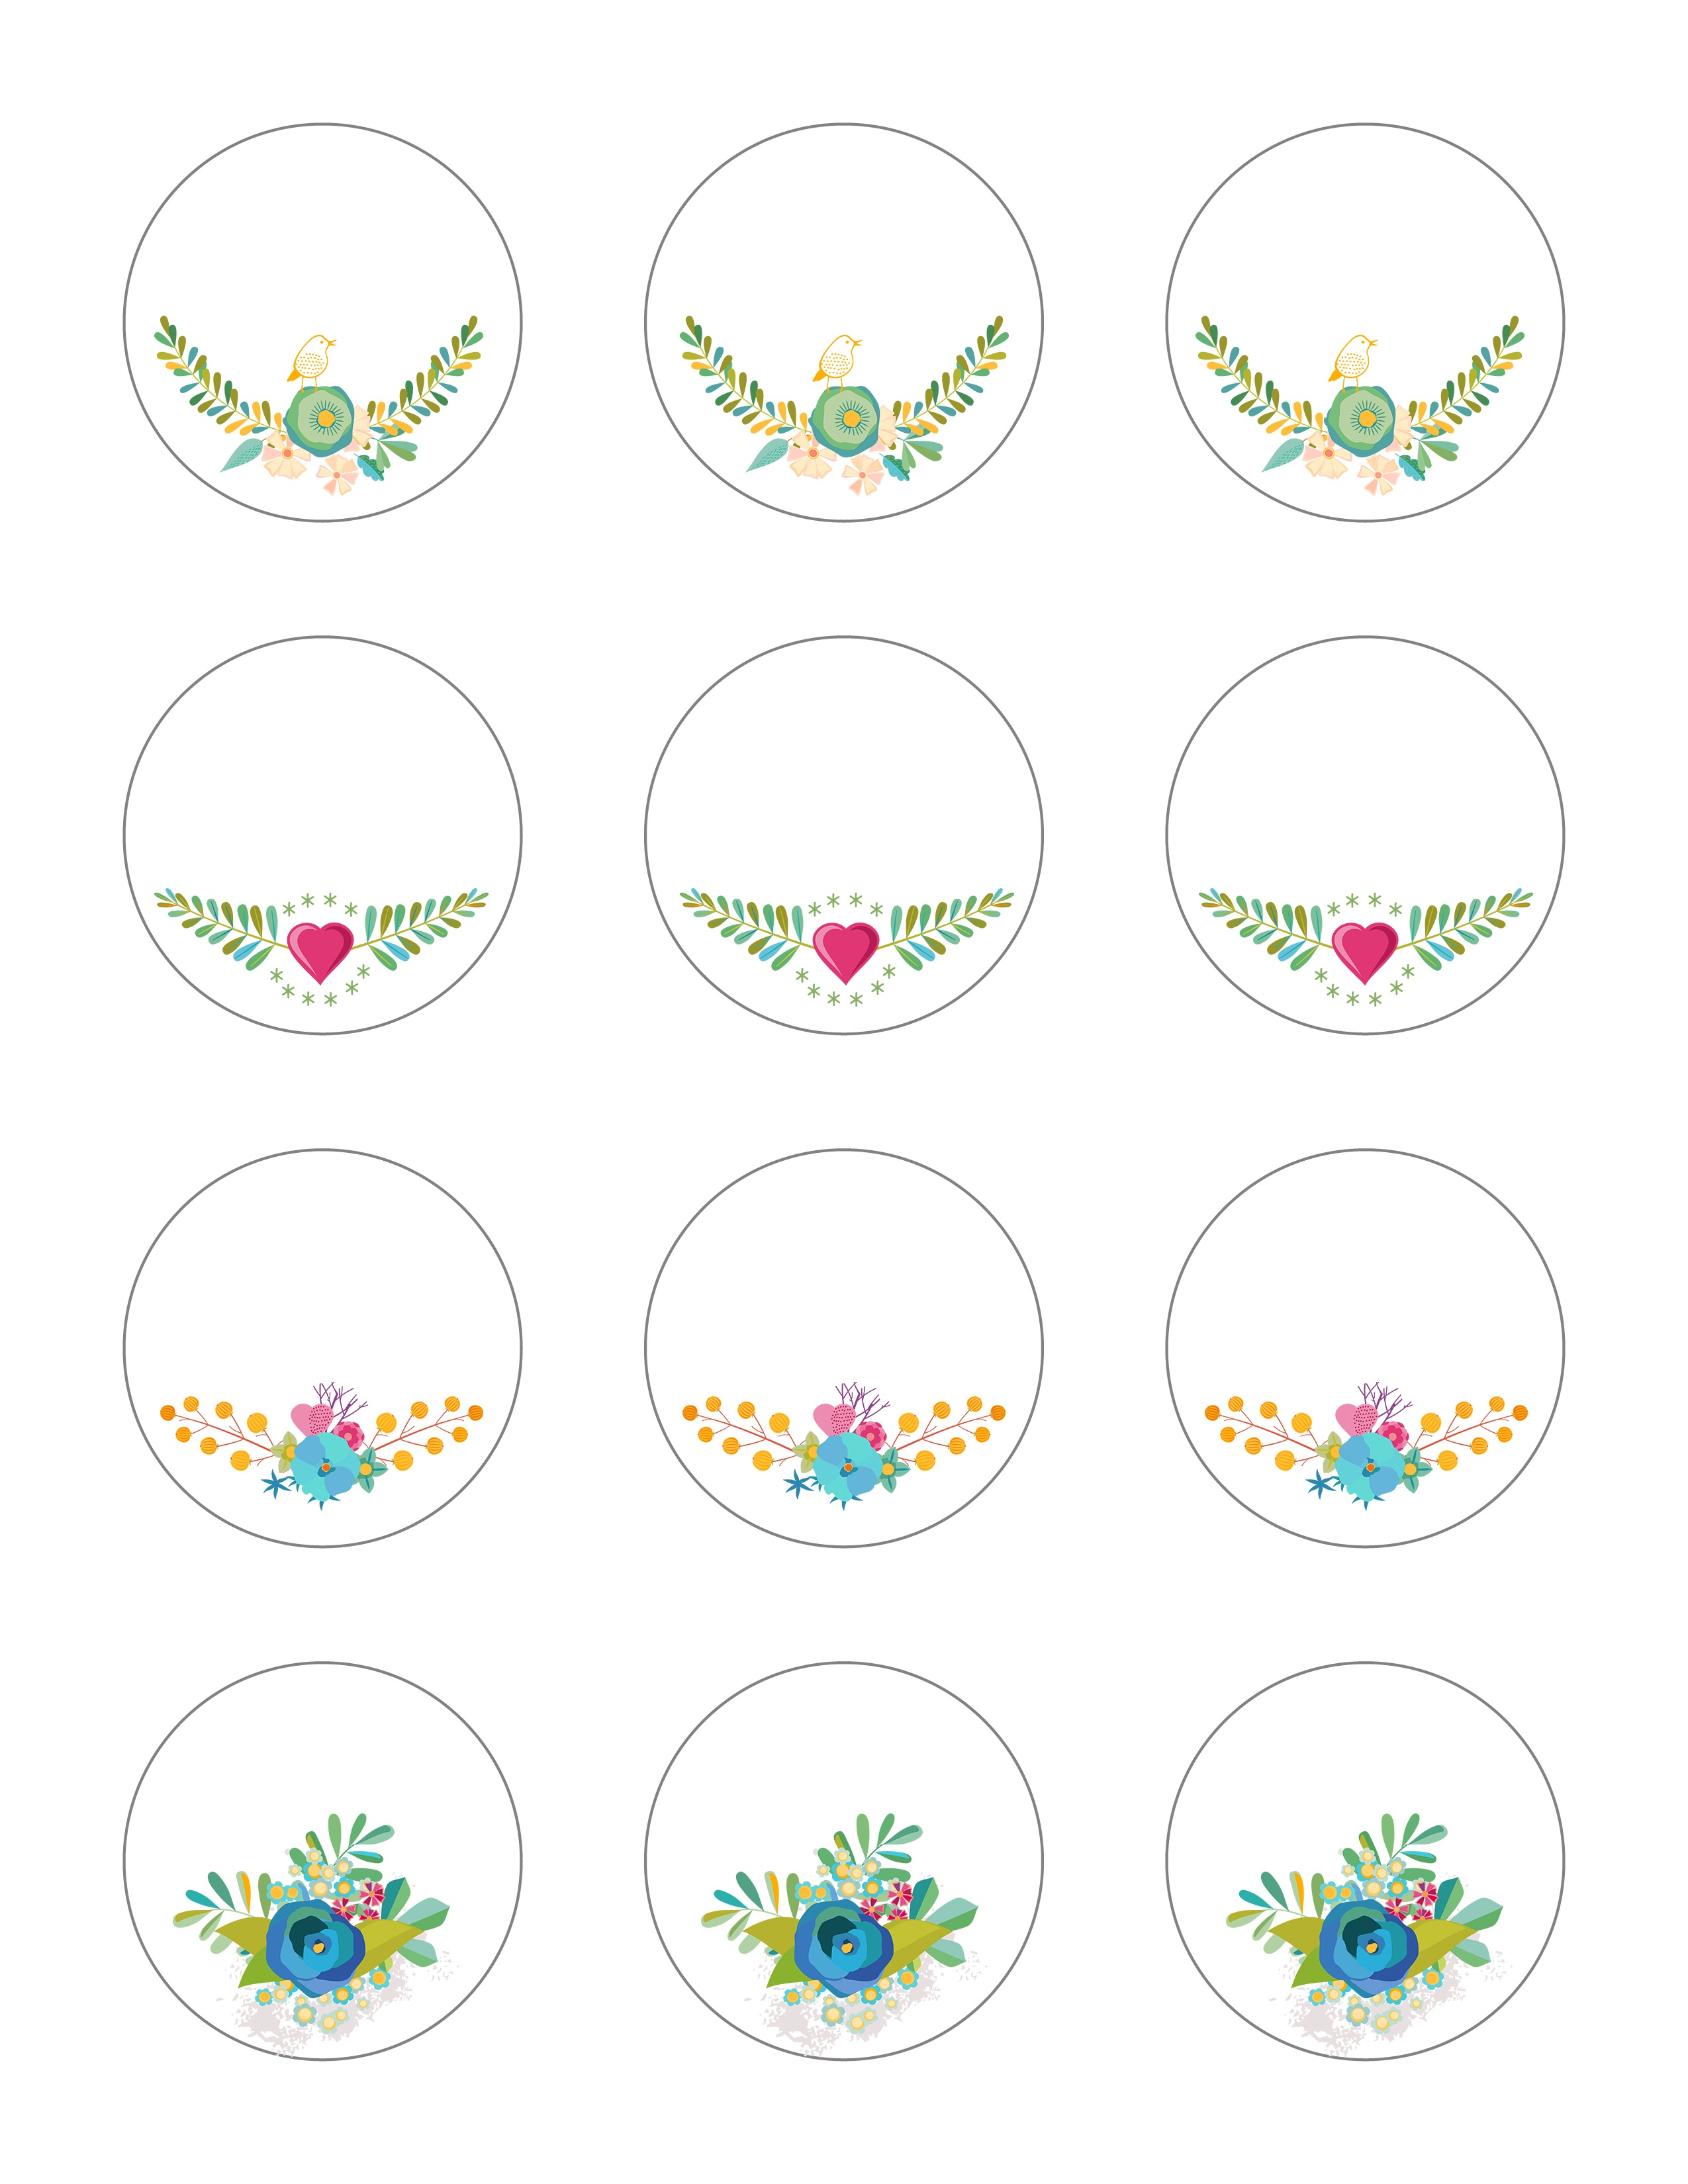 Free Printable Stickers - Spring Time Floral Labels - The Graffical Muse - Free Printable Floral Labels